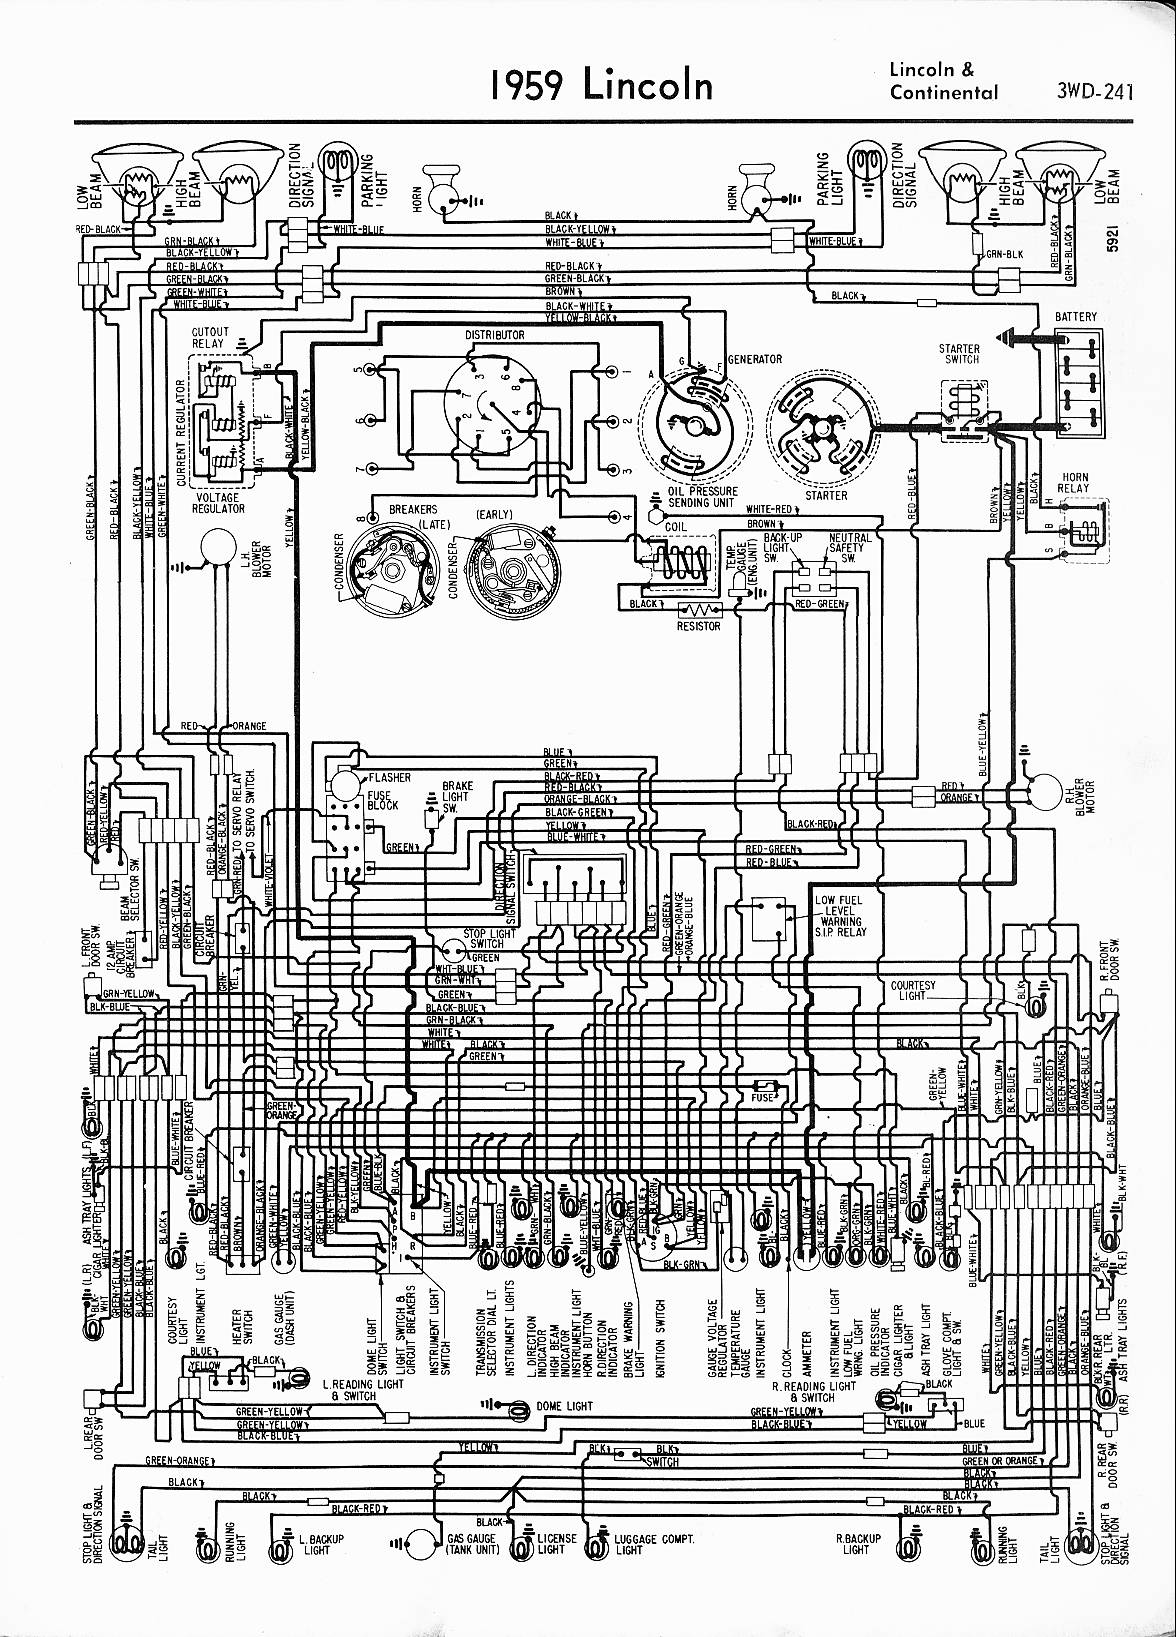 1960 Lincoln Engine Diagram Wiring Data Diagrams Of Buick All Models 1957 1965 Plymouth